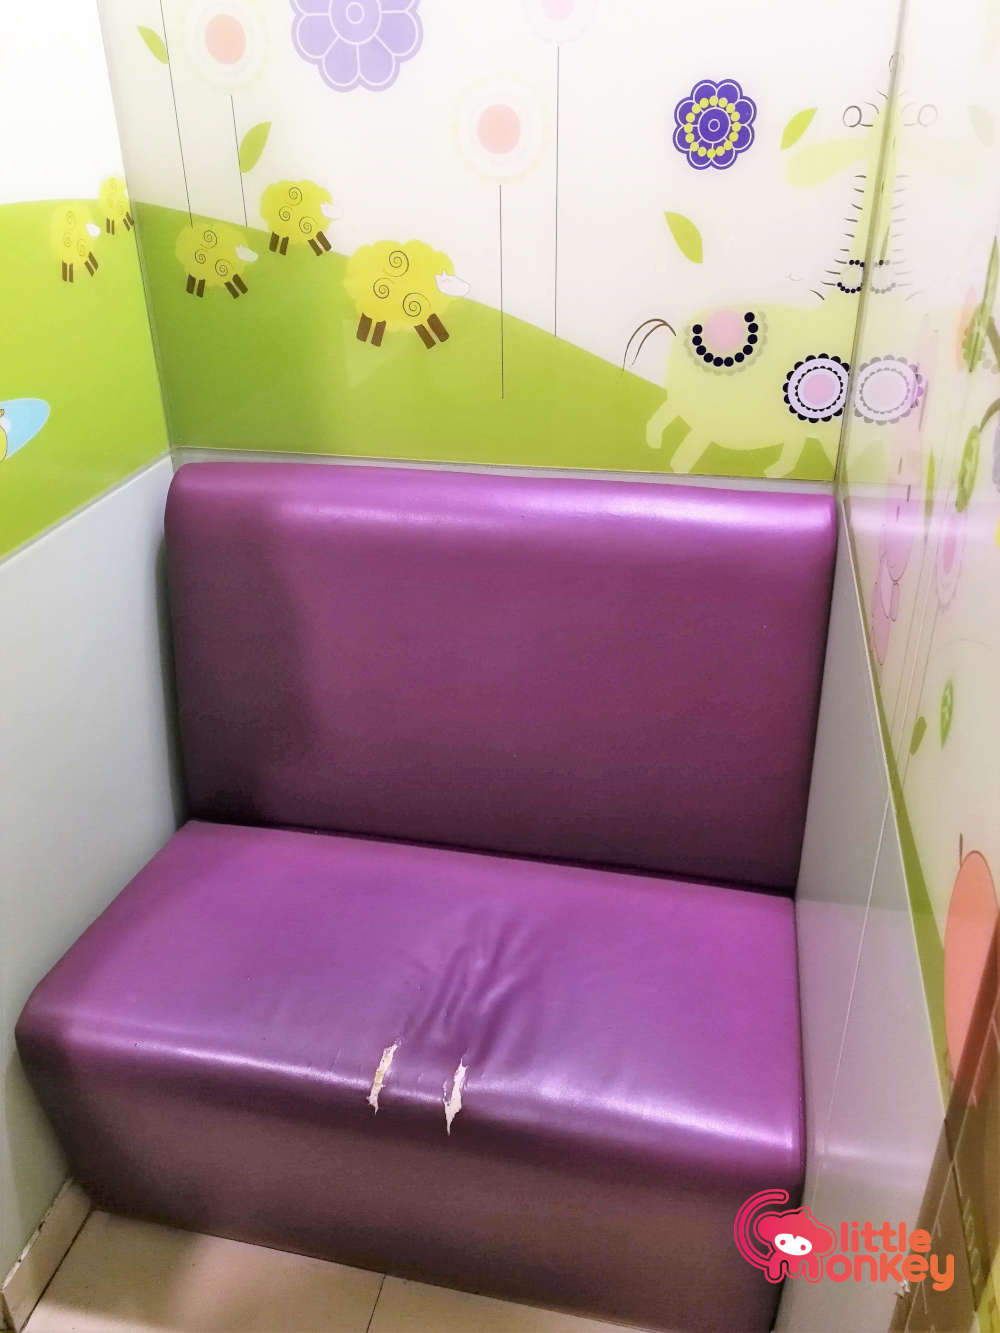 East Point City's Nursery Room sitting area.